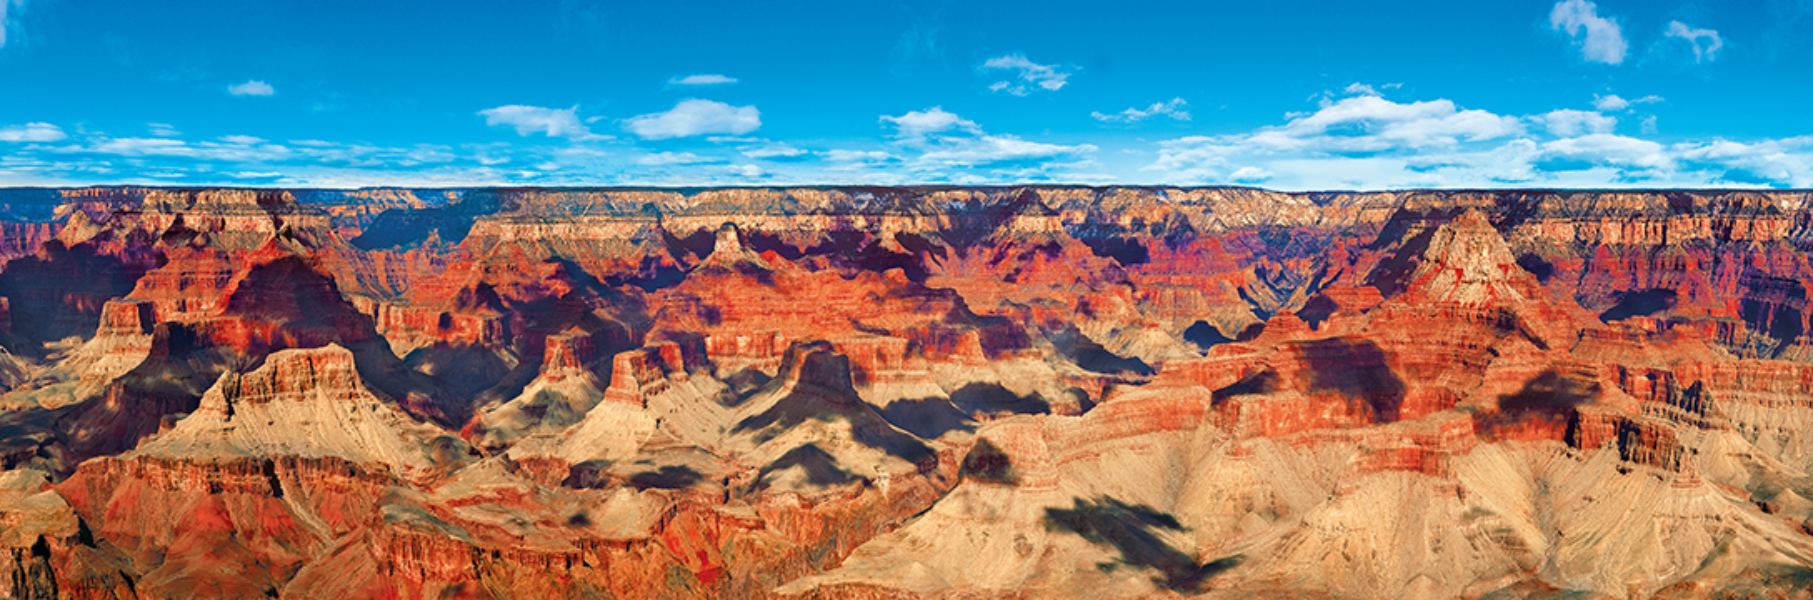 Grand Canyon National Parks Jigsaw Puzzle